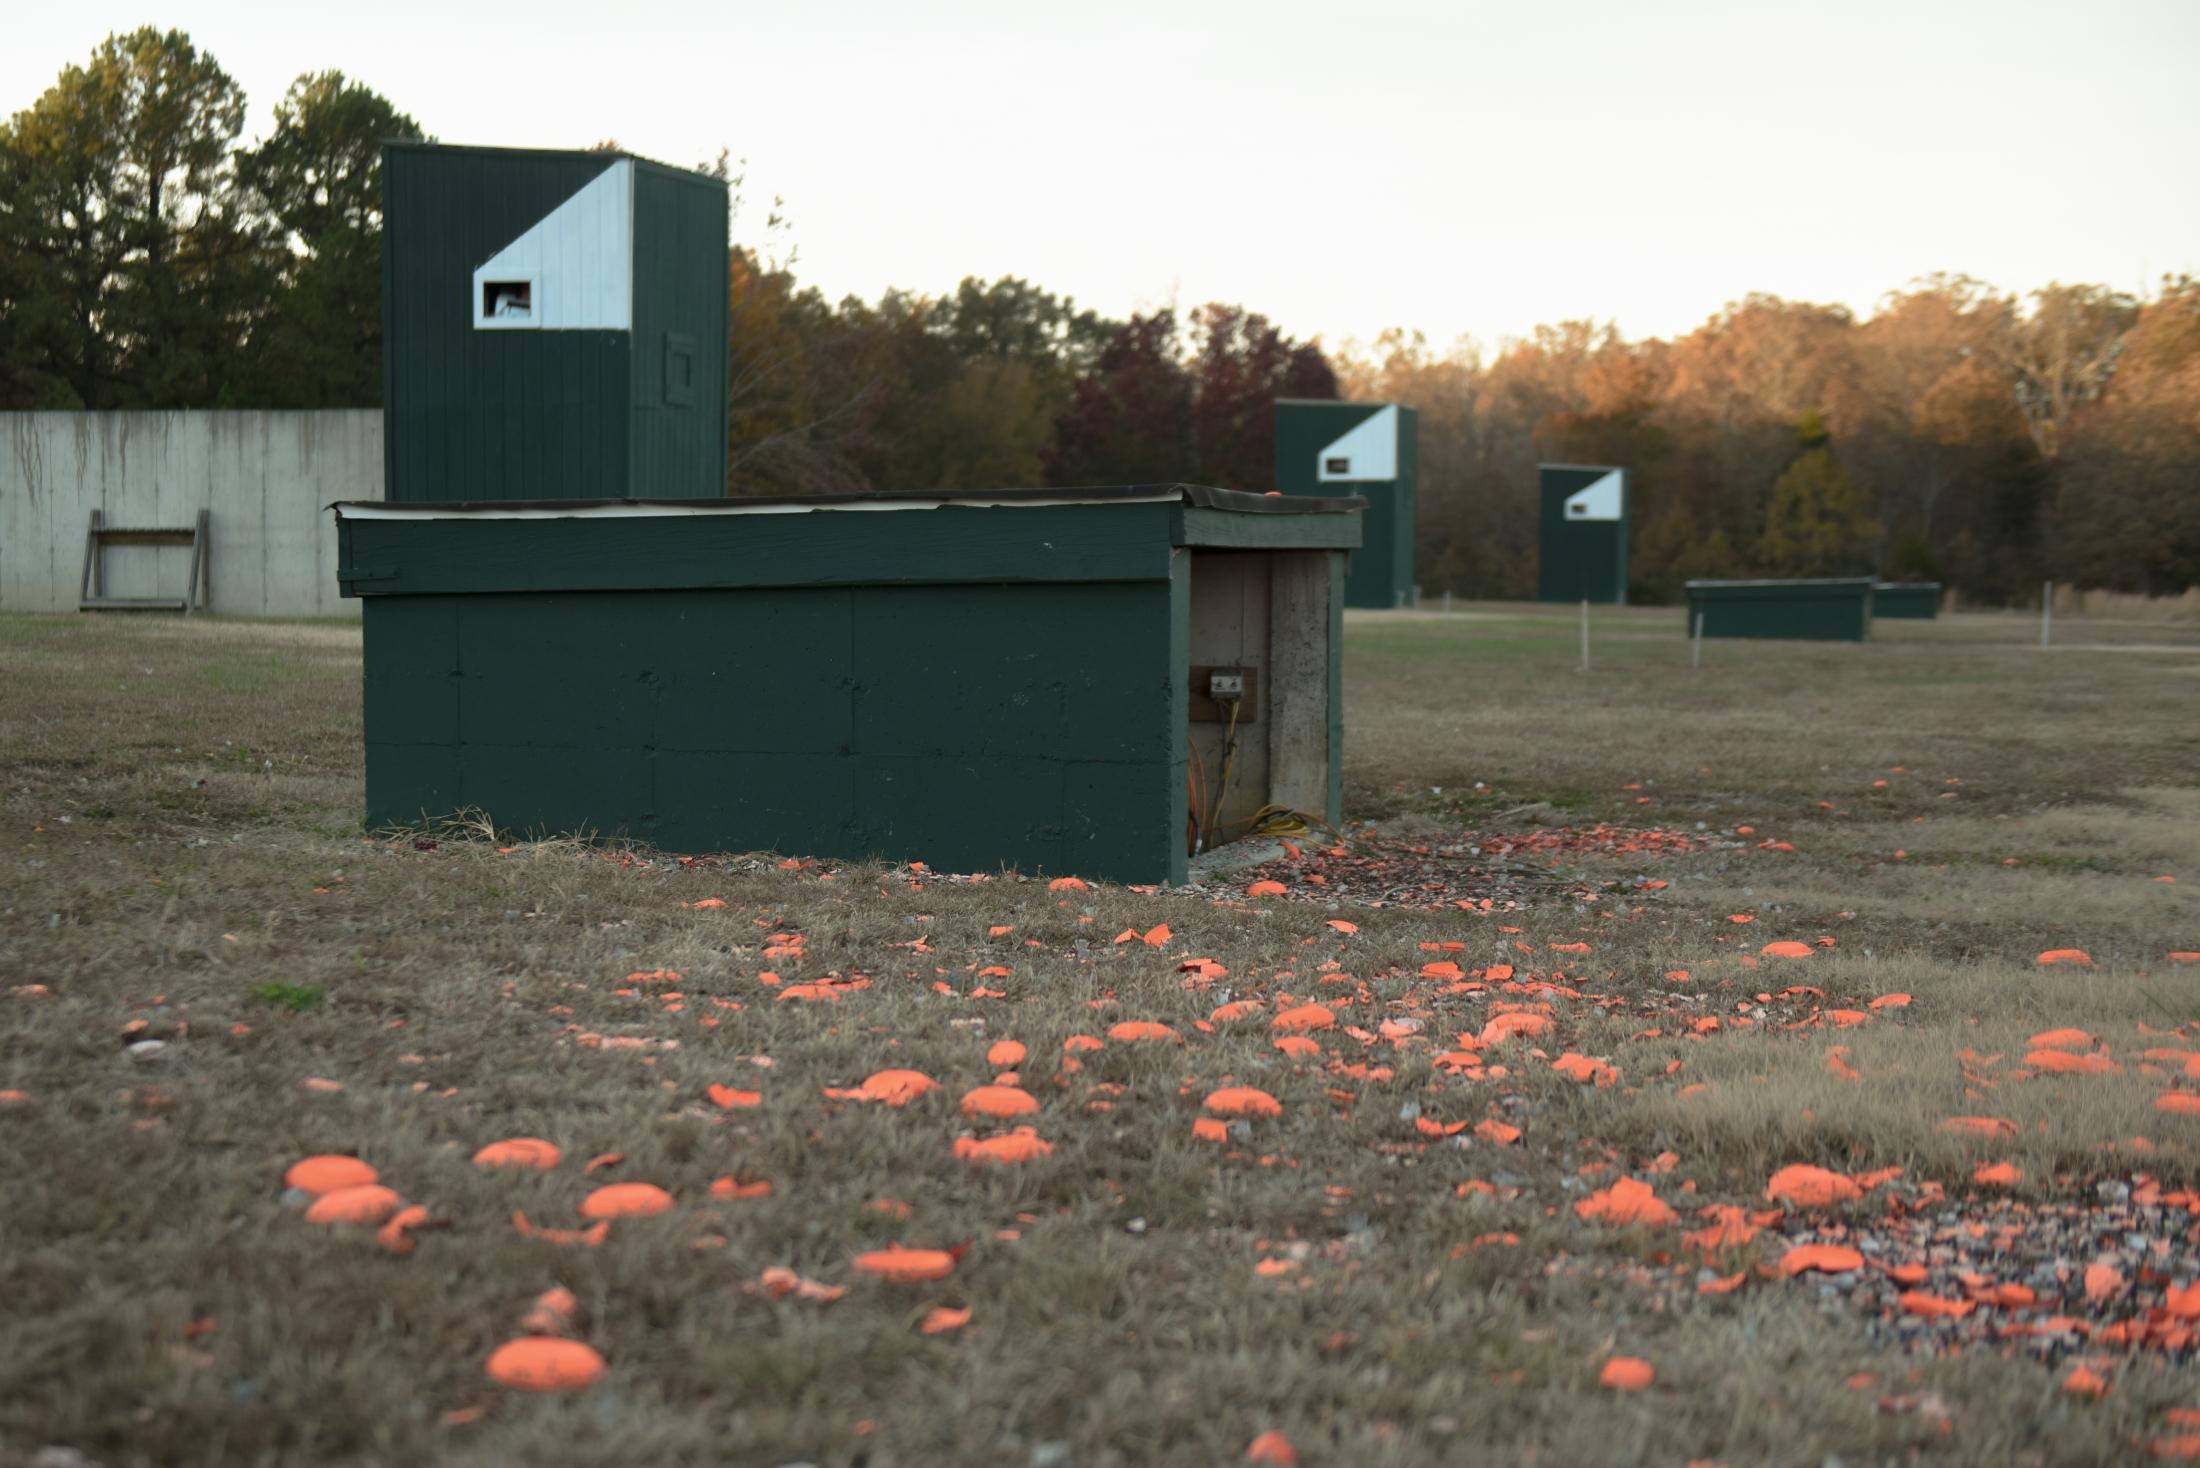 Clay birds for trap shooting litter the ground at the Poplar Bluff Gun Club on the trap shooting range in Poplar Bluff, Missouri on November 9, 2019. Missouri 4-H shooting sports has seen an increase, too, going from 6,400 members in 2010 to around 8,000 in 2019.